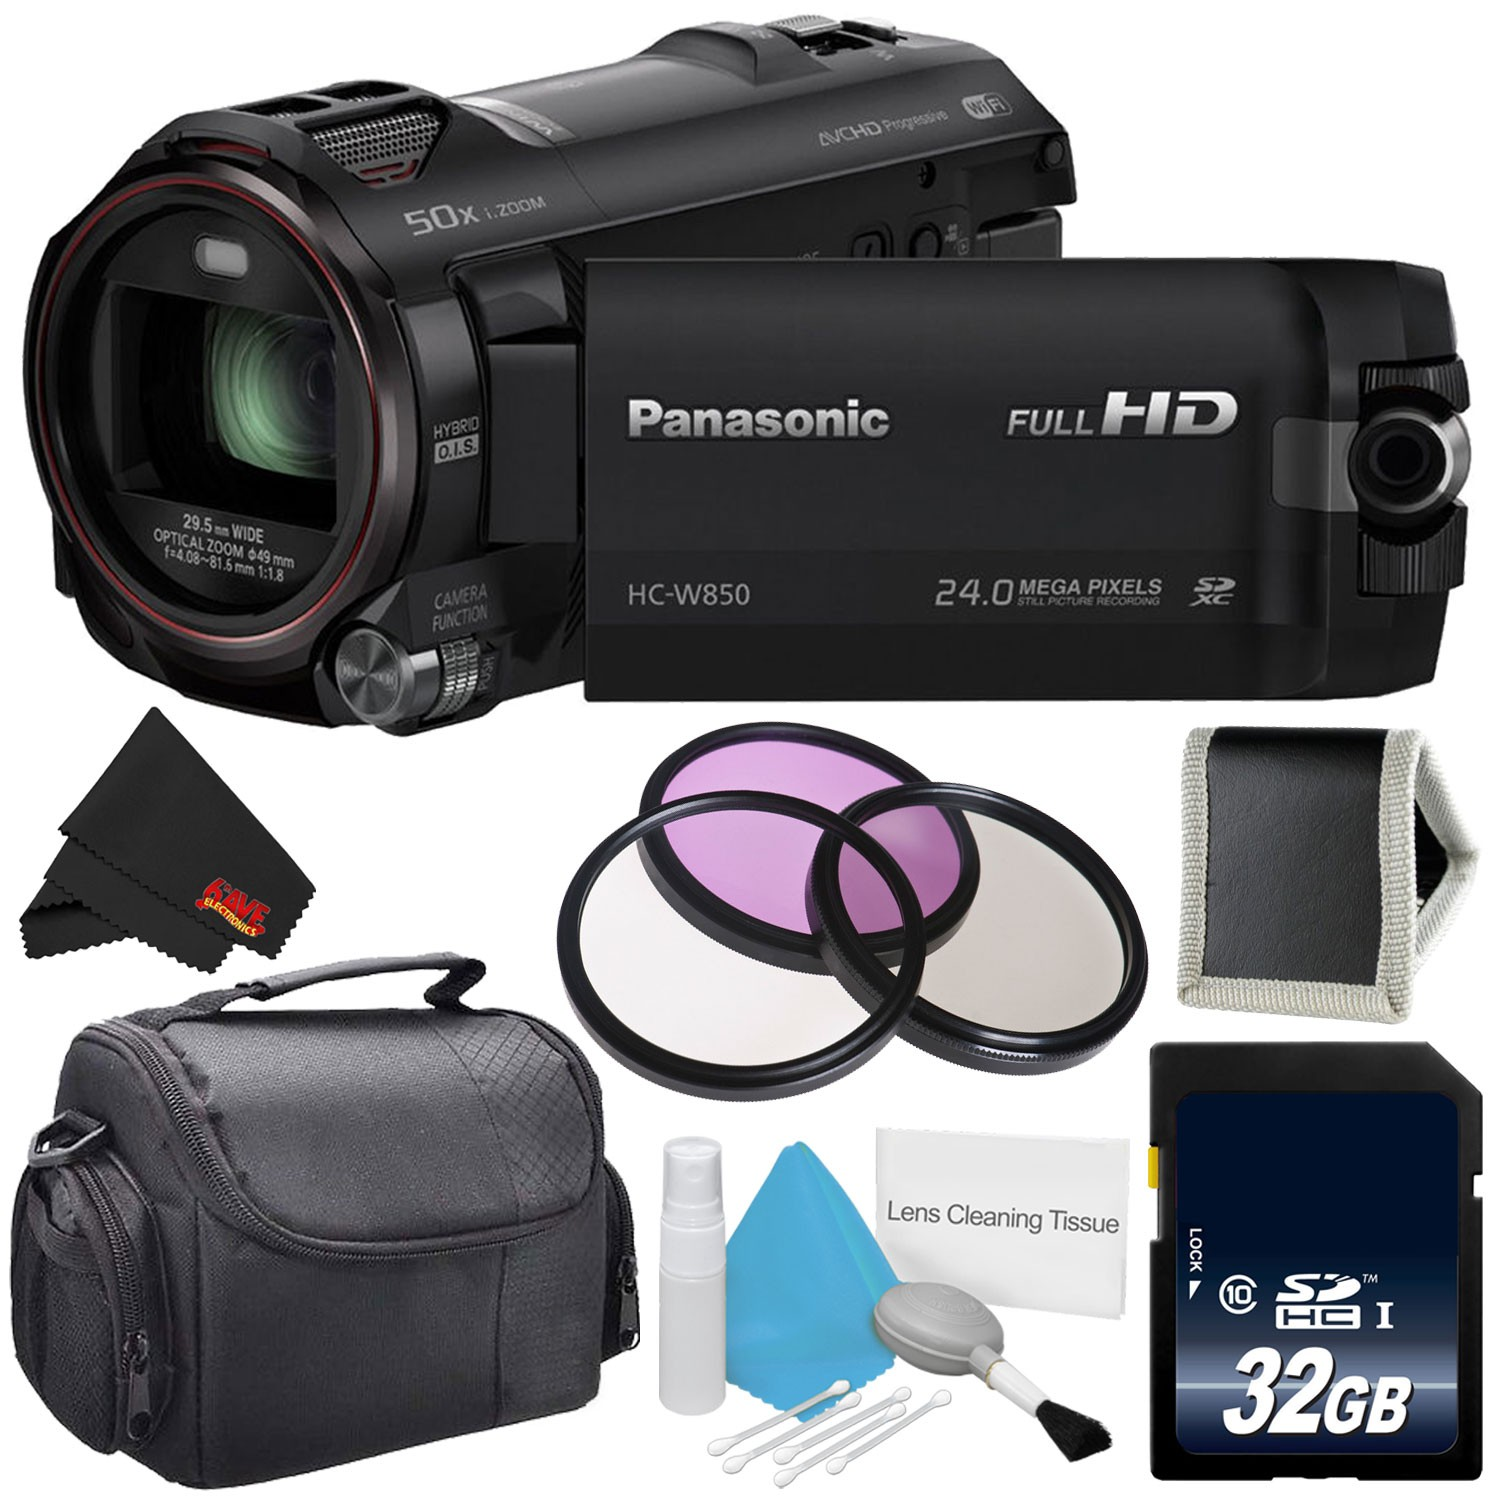 Panasonic HC-W850 Twin Camera Full HD Camcorder Bundle with Carrying Case + 32GB Memory Card + More